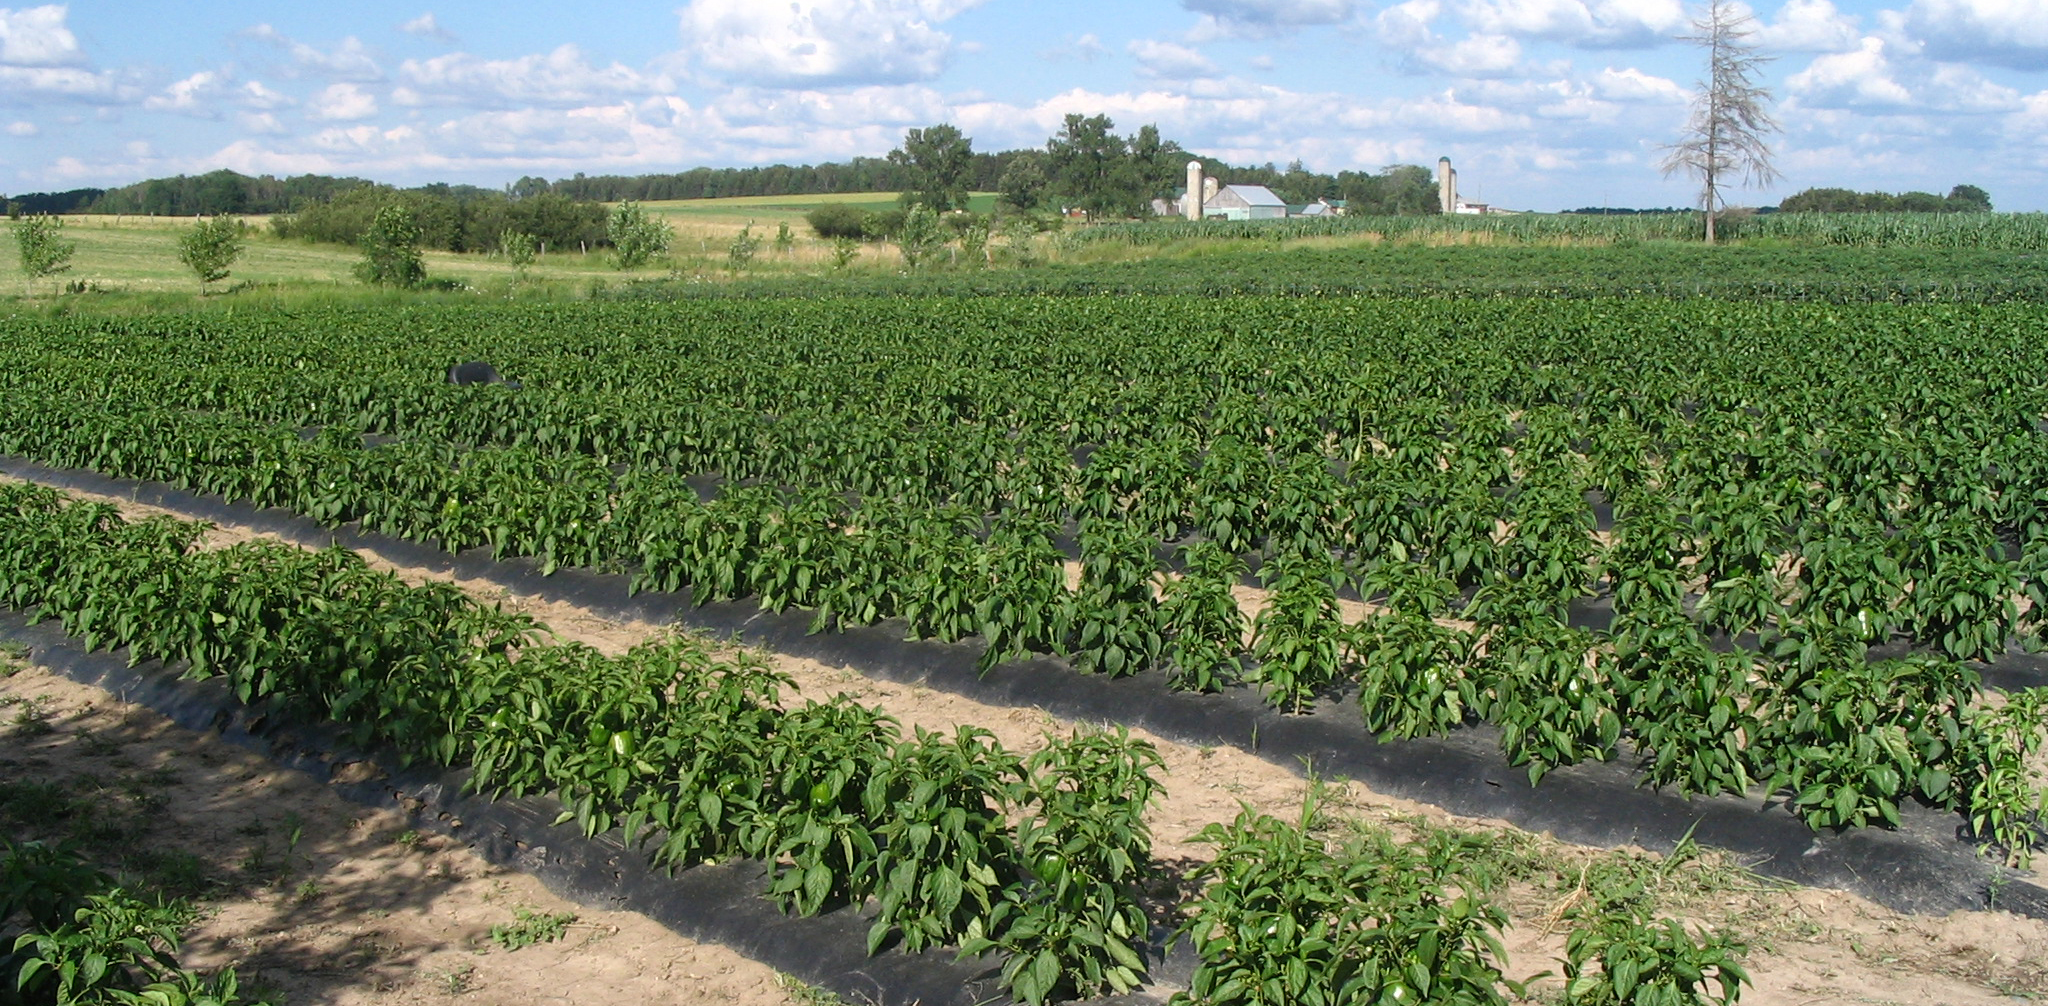 Healthy crops in adverse and stressful conditions - photo